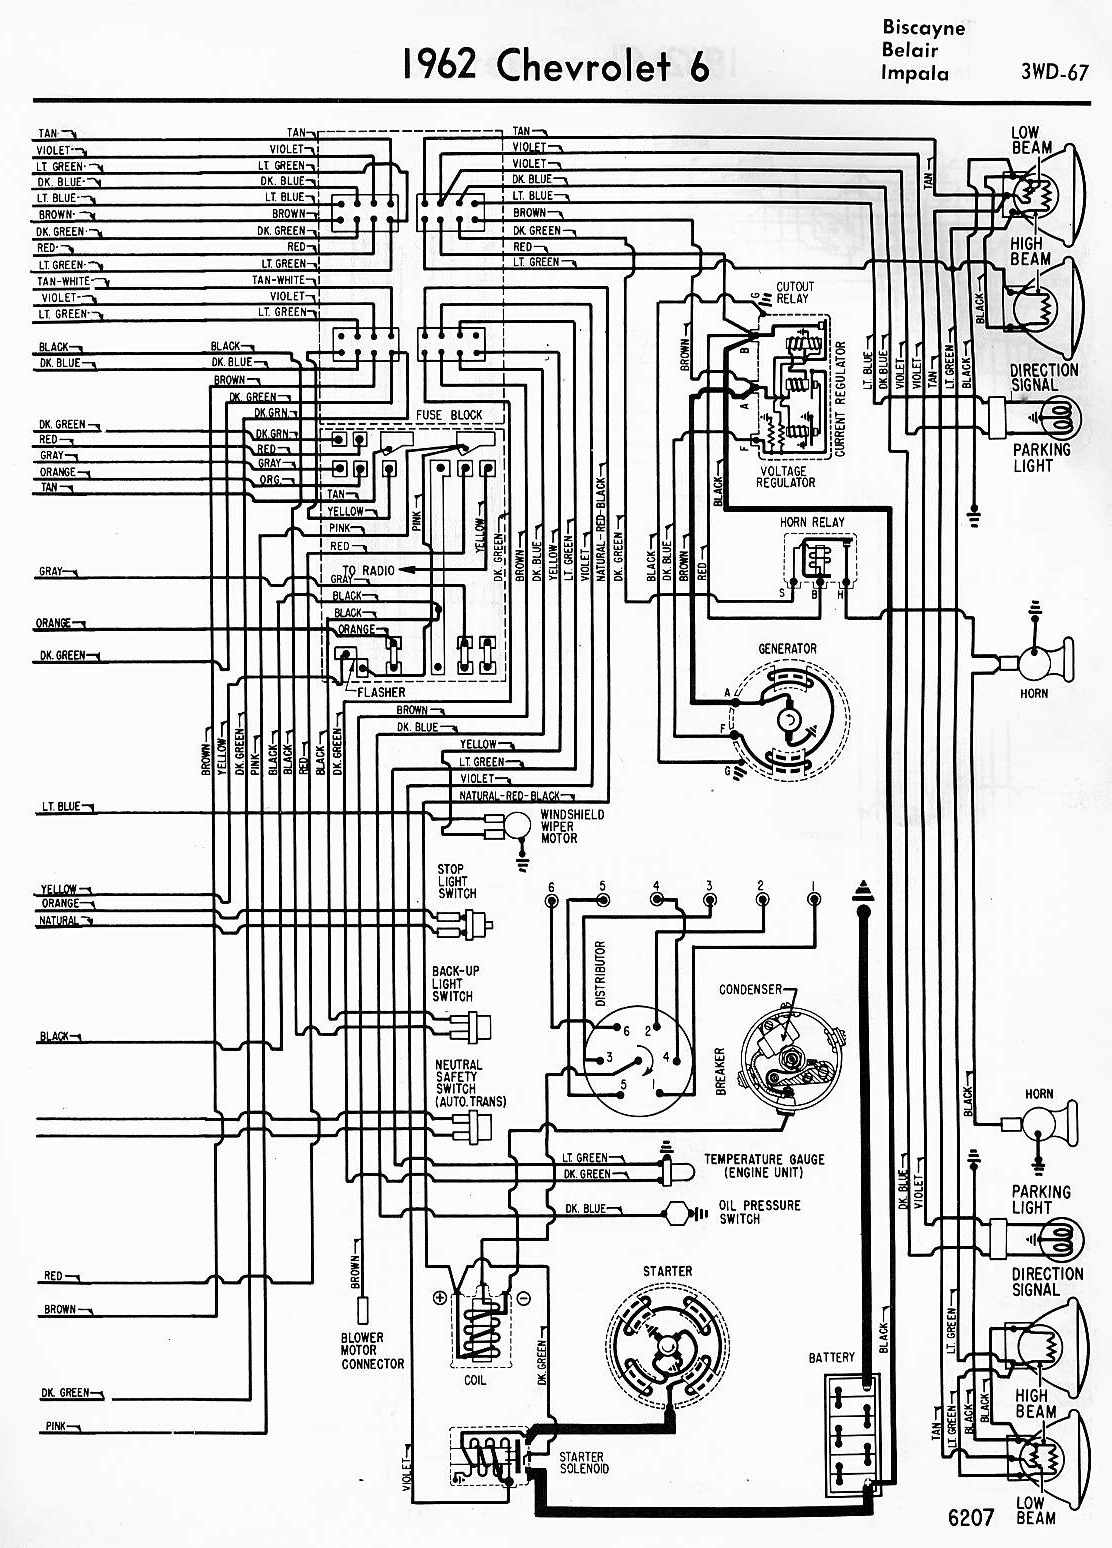 Electrical+Wiring+Diagram+Of+1964+Chevrolet+6 2011 impala wiring diagram 2005 impala ignition wiring diagram 2005 impala ignition switch wiring diagram at bayanpartner.co